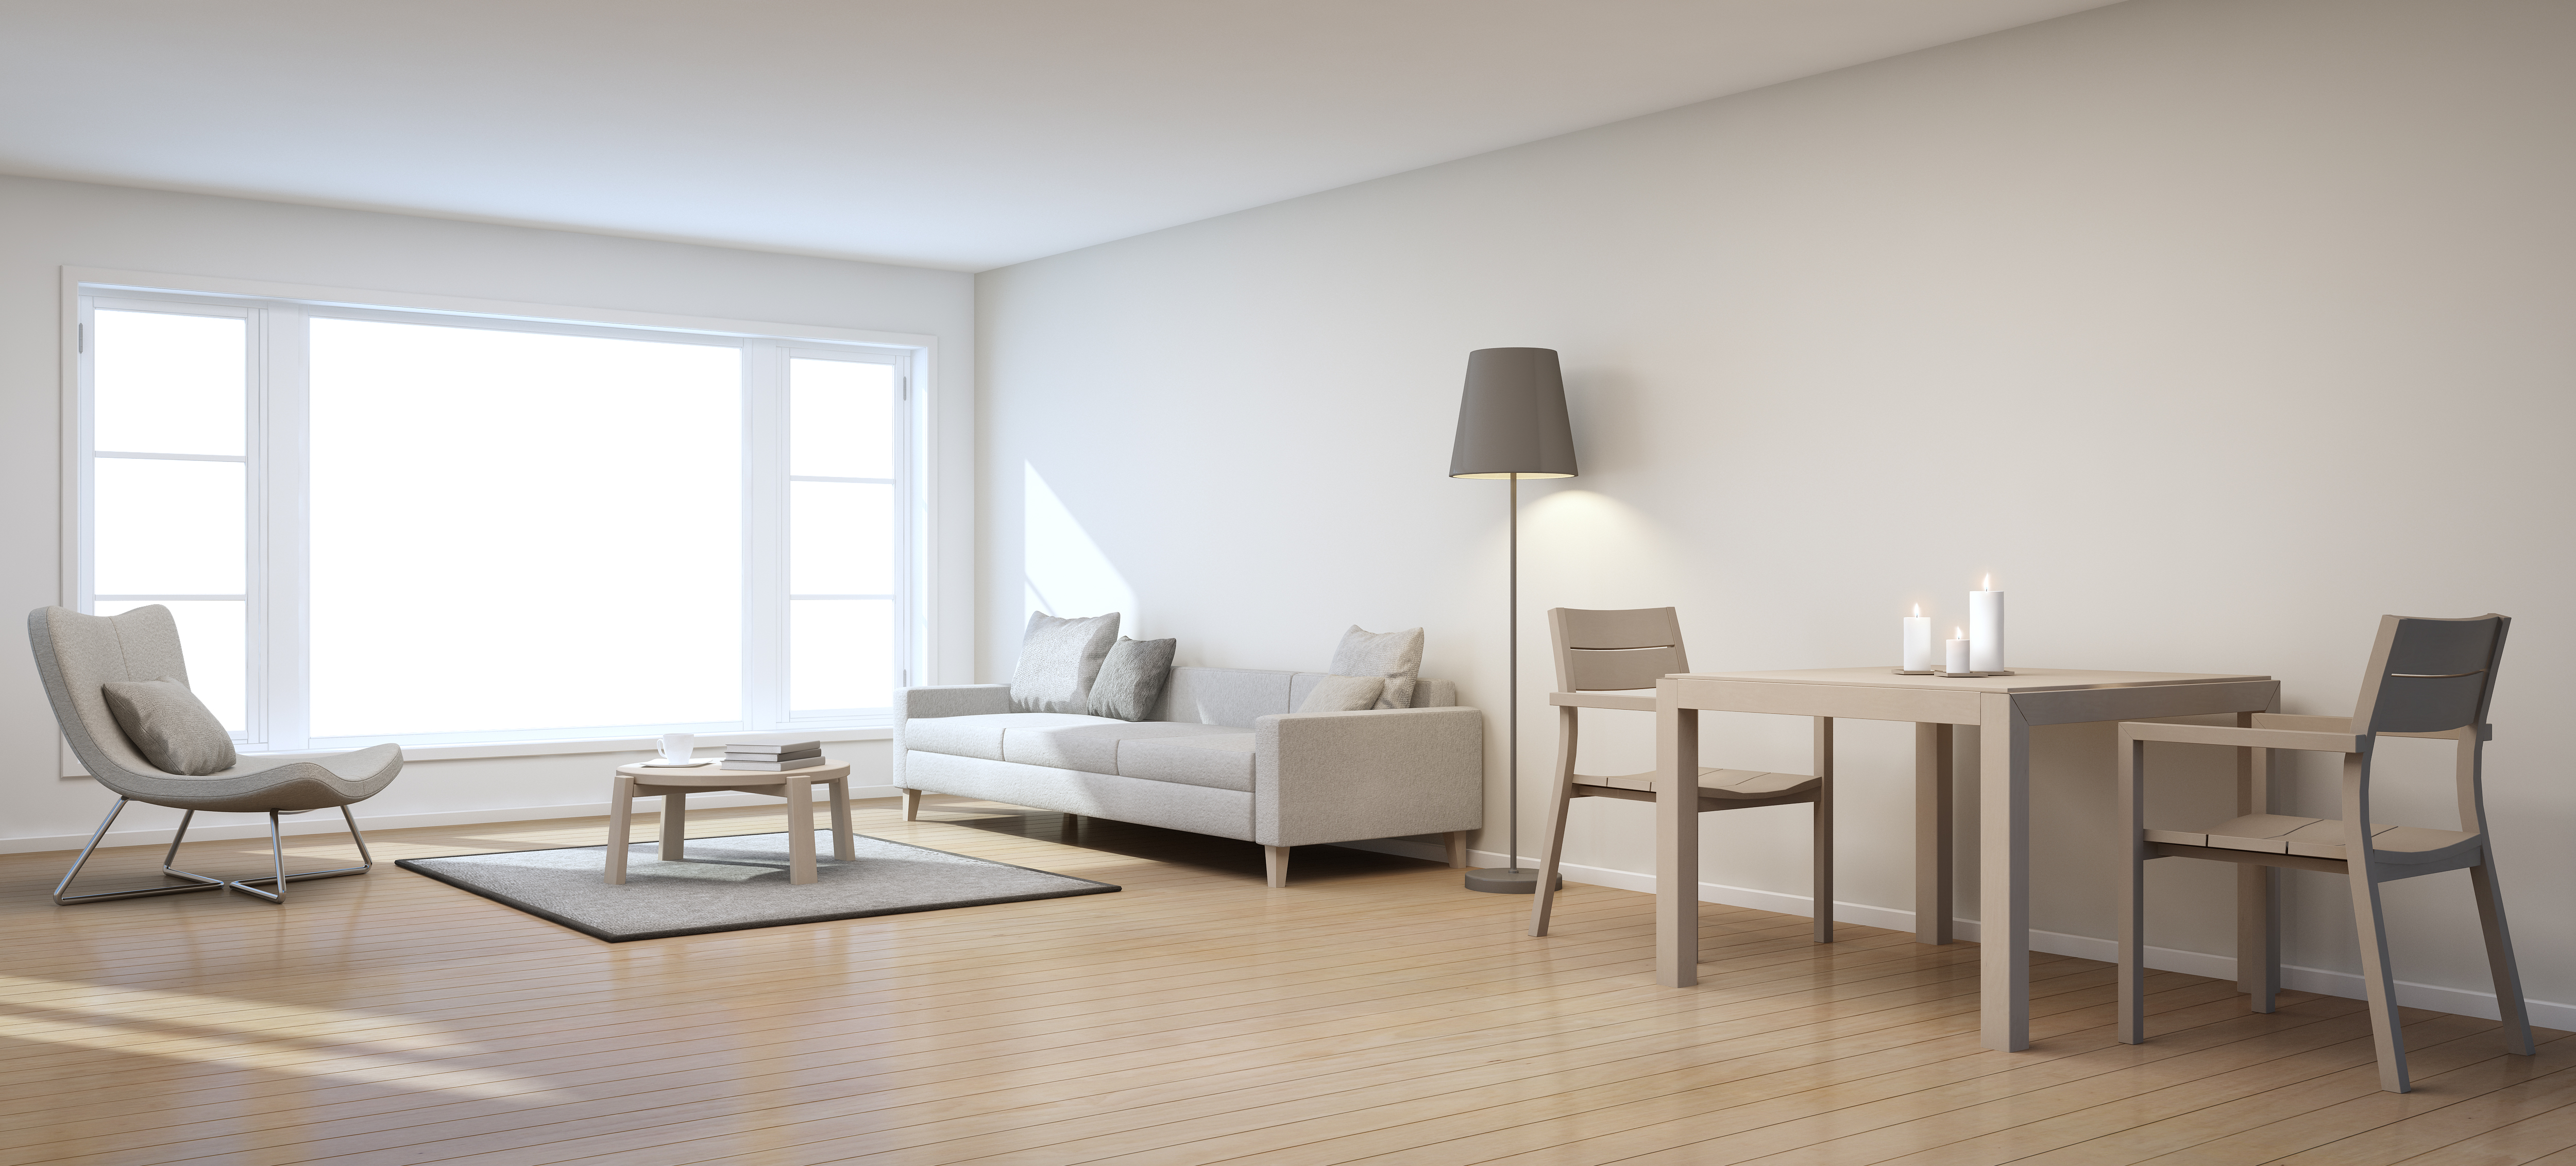 white room with couch and lamp, wooden chairs and table